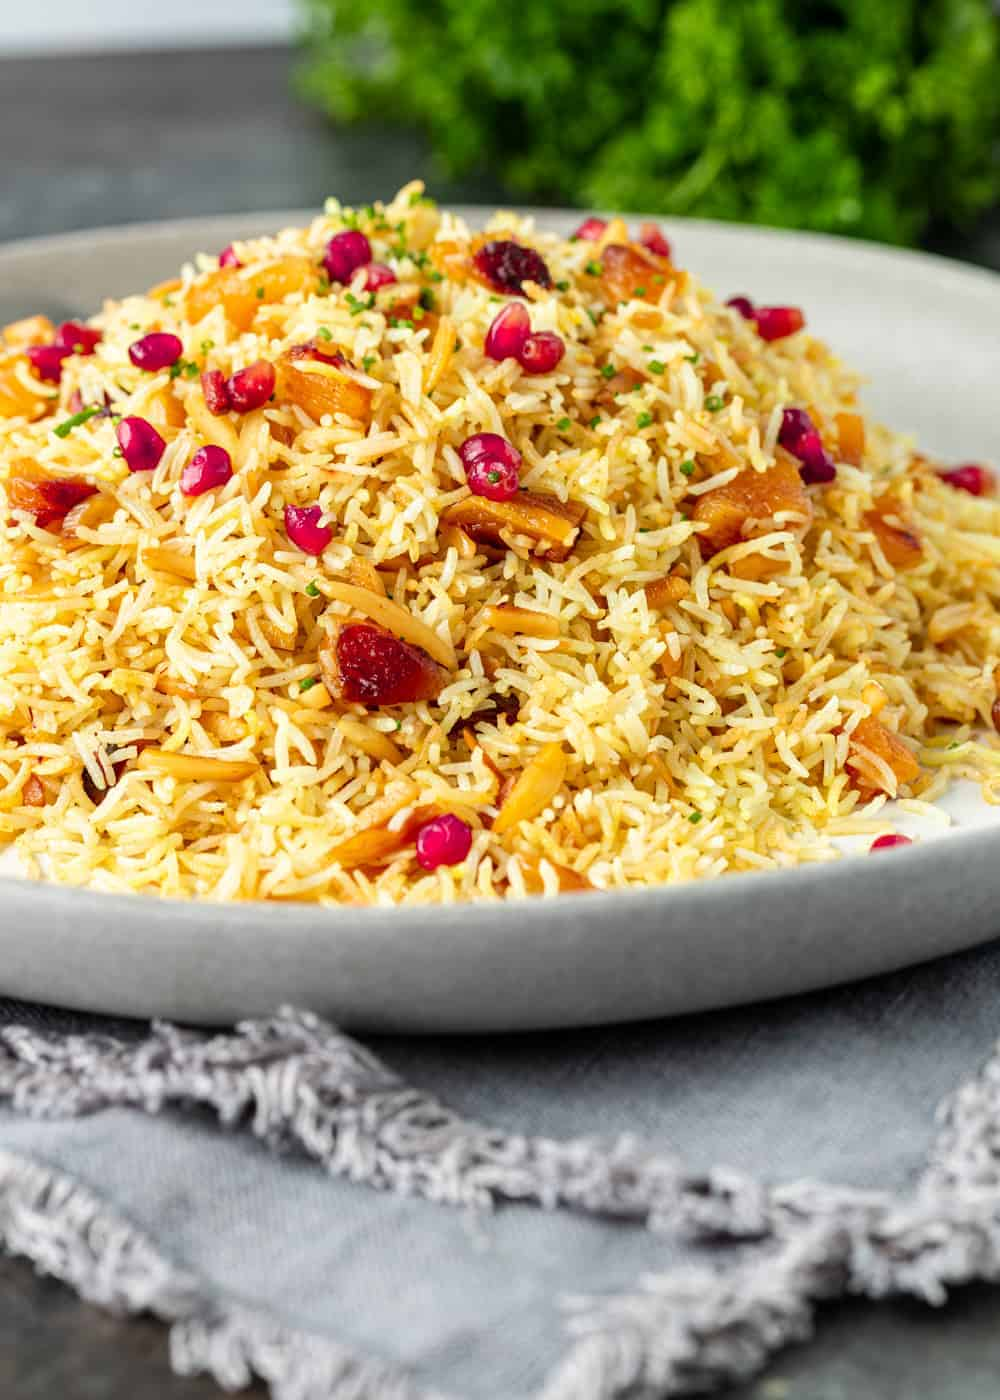 plate of fluffy yellow rice with apricots and pomegranate seeds